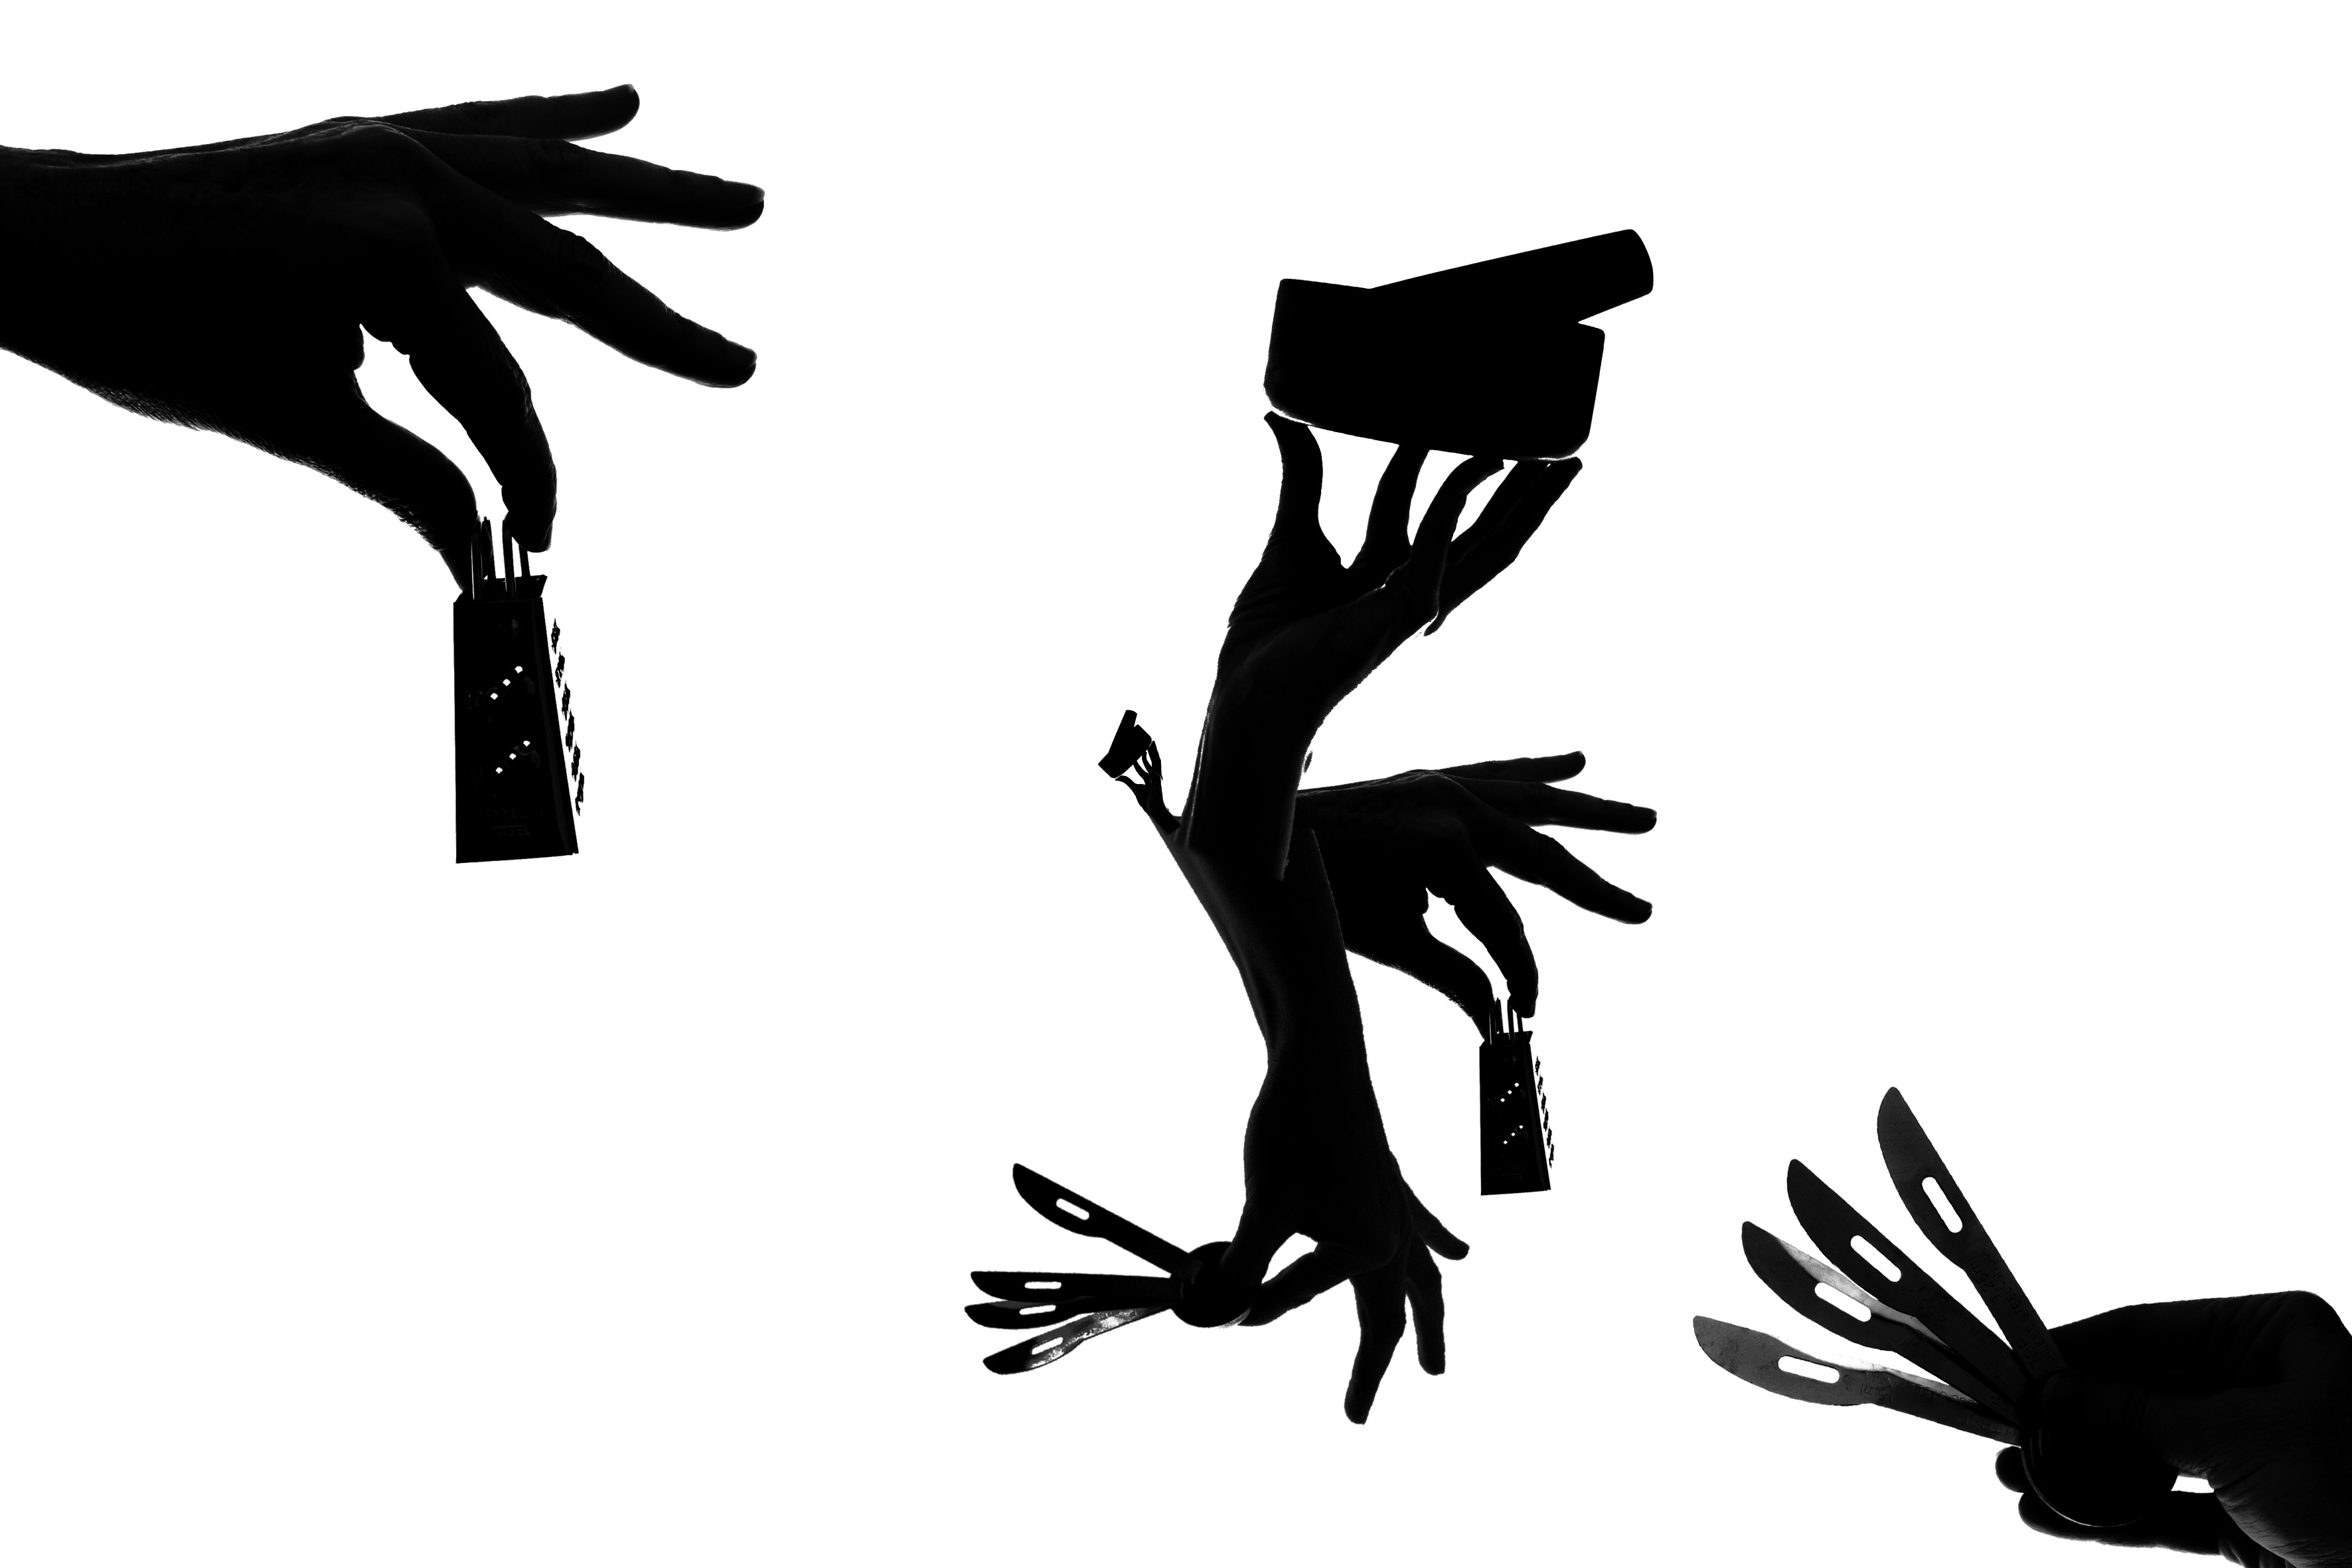 Stencil style silhouettes of feminine hands holding kitchen apothecary tools including a mortar and pestle, tiny knives and measuring sppons, and tiny graters.